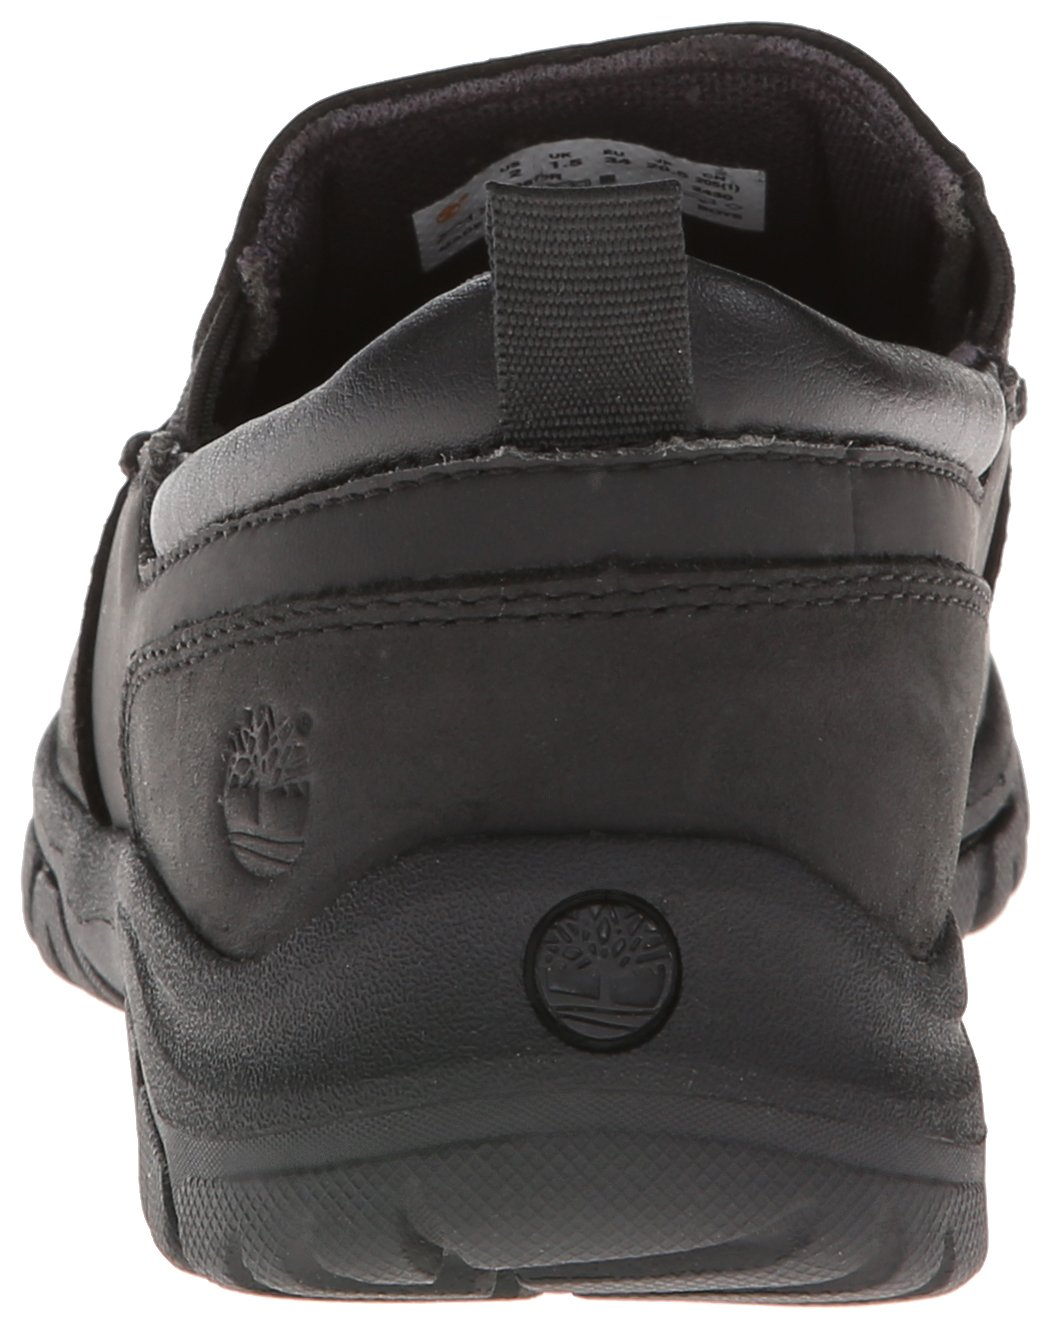 Timberland Discovery Pass Moc Toe Moc Toe Slip-On (Toddler/Little Kid/Big Kid),Black,9.5 M US Toddler by Timberland (Image #2)